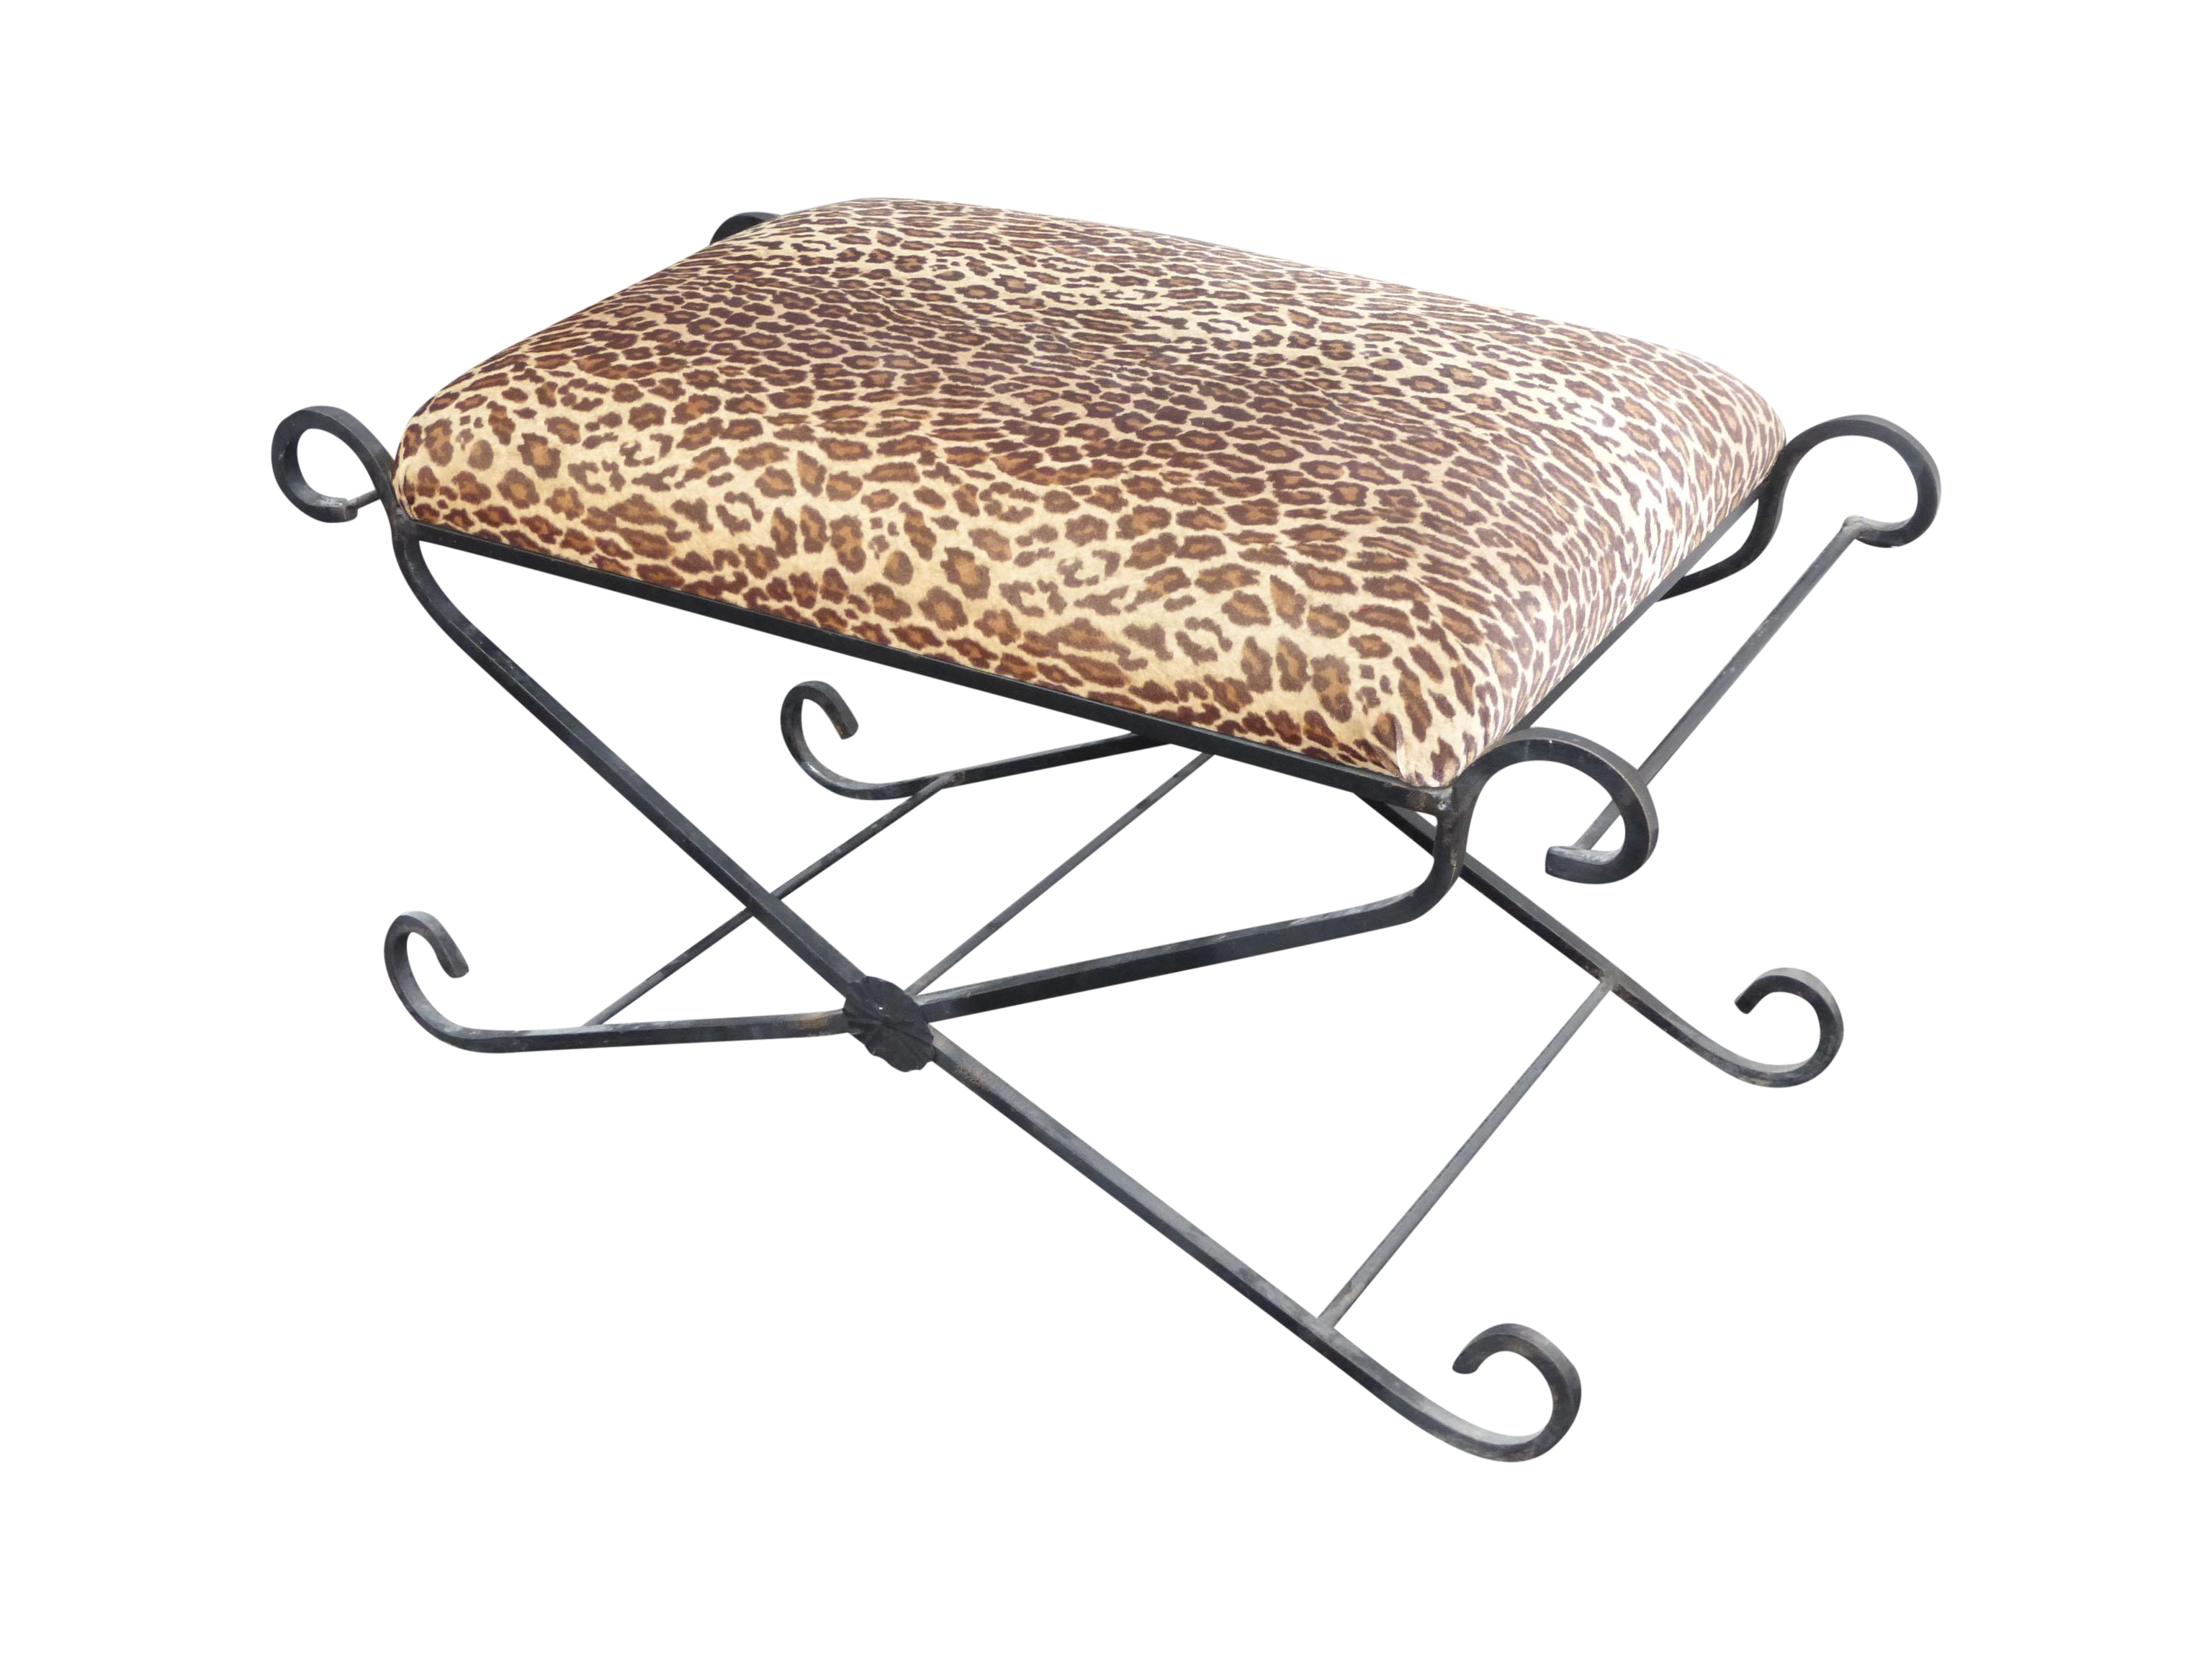 in dsc bench shop ottoman the print kellogg animal zebra prints dc pretty our seen collection leopard for going wild